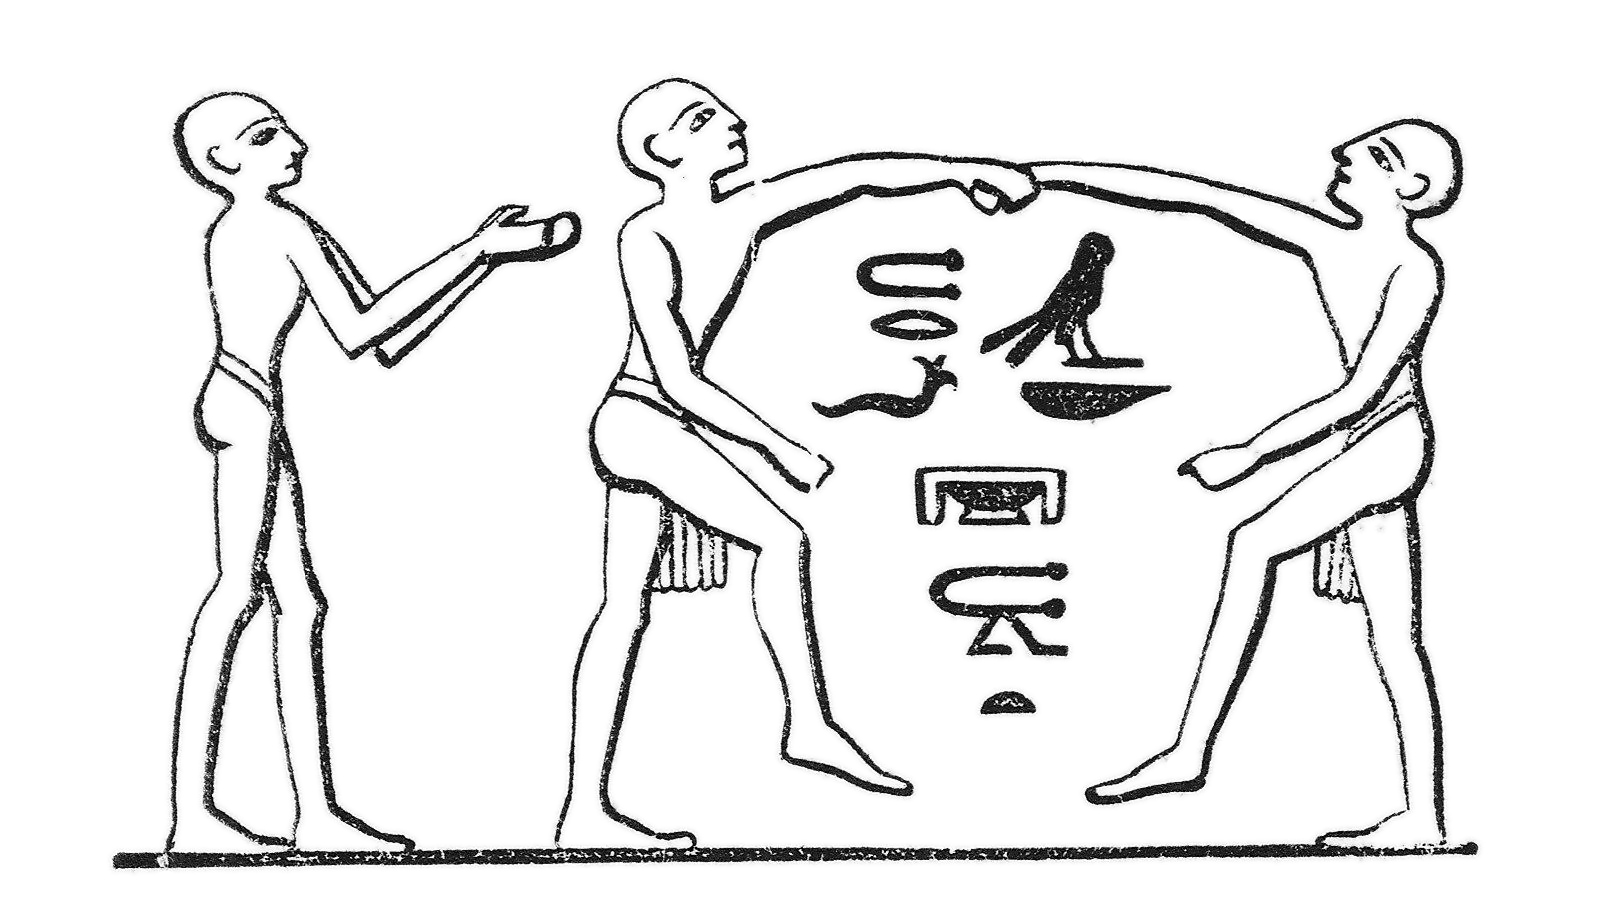 The Origins of the Top 5 Most Ancient Martial Arts that